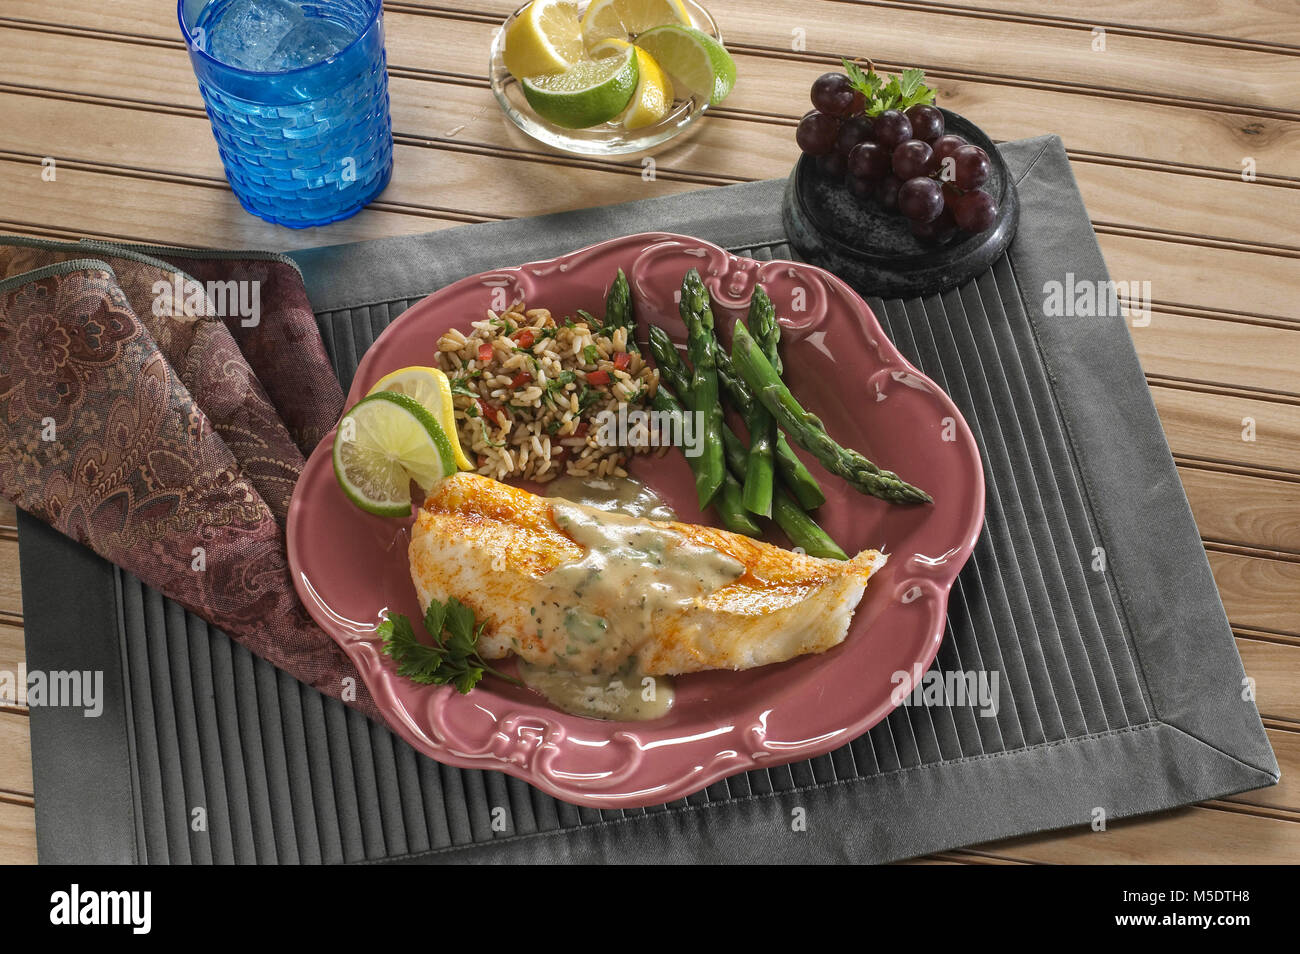 Cod Fish Fillet Dinner - Stock Image